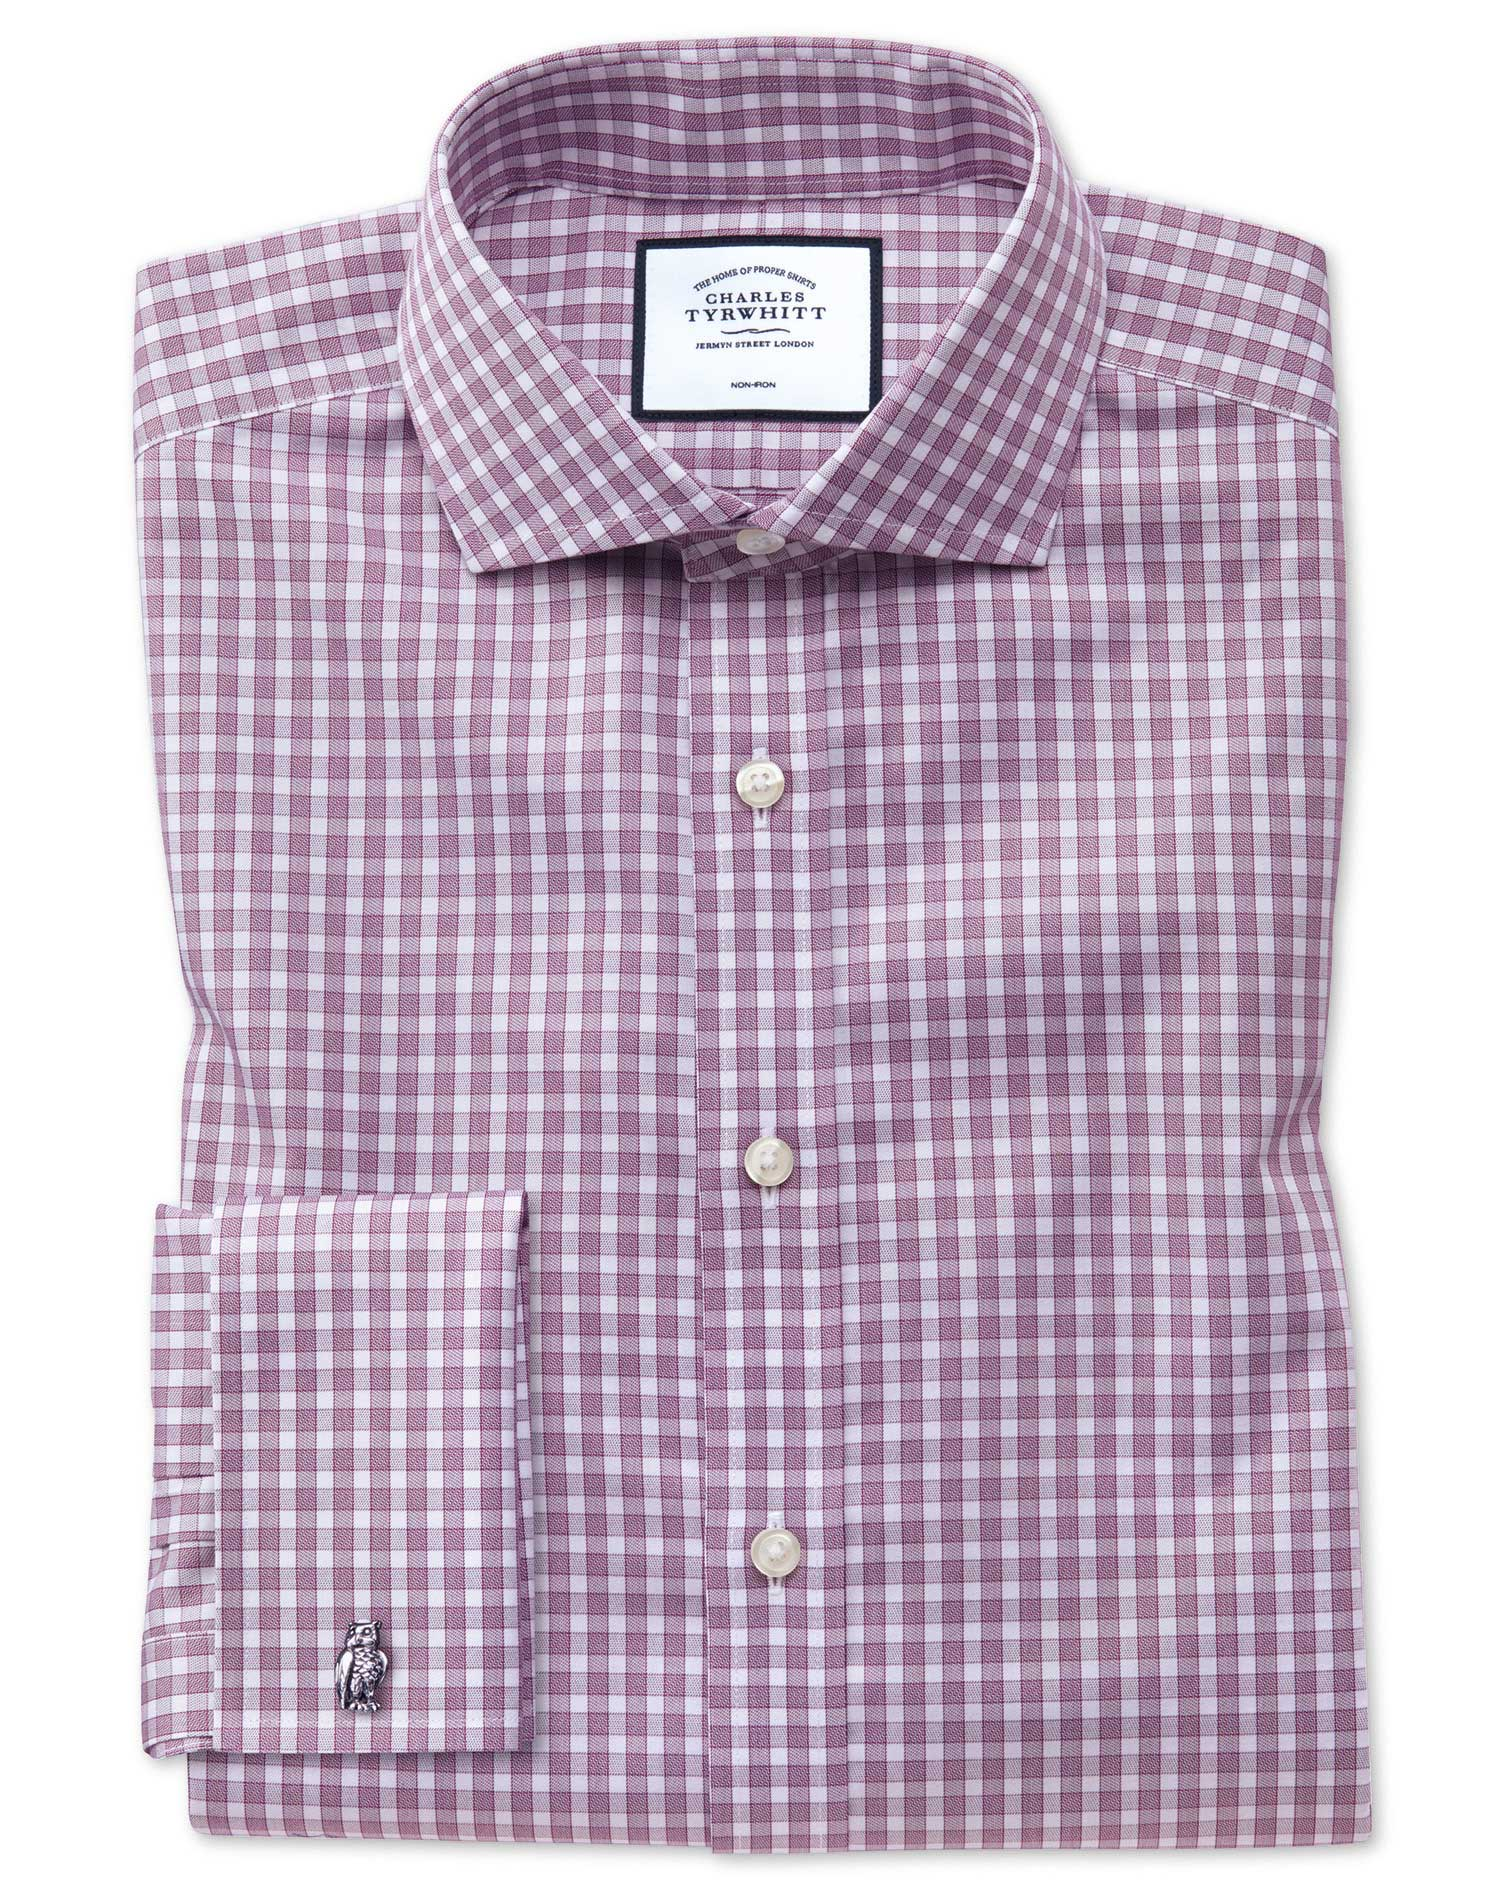 Slim Fit Non-Iron Twill Gingham Berry Cotton Formal Shirt Single Cuff Size 16/36 by Charles Tyrwhitt